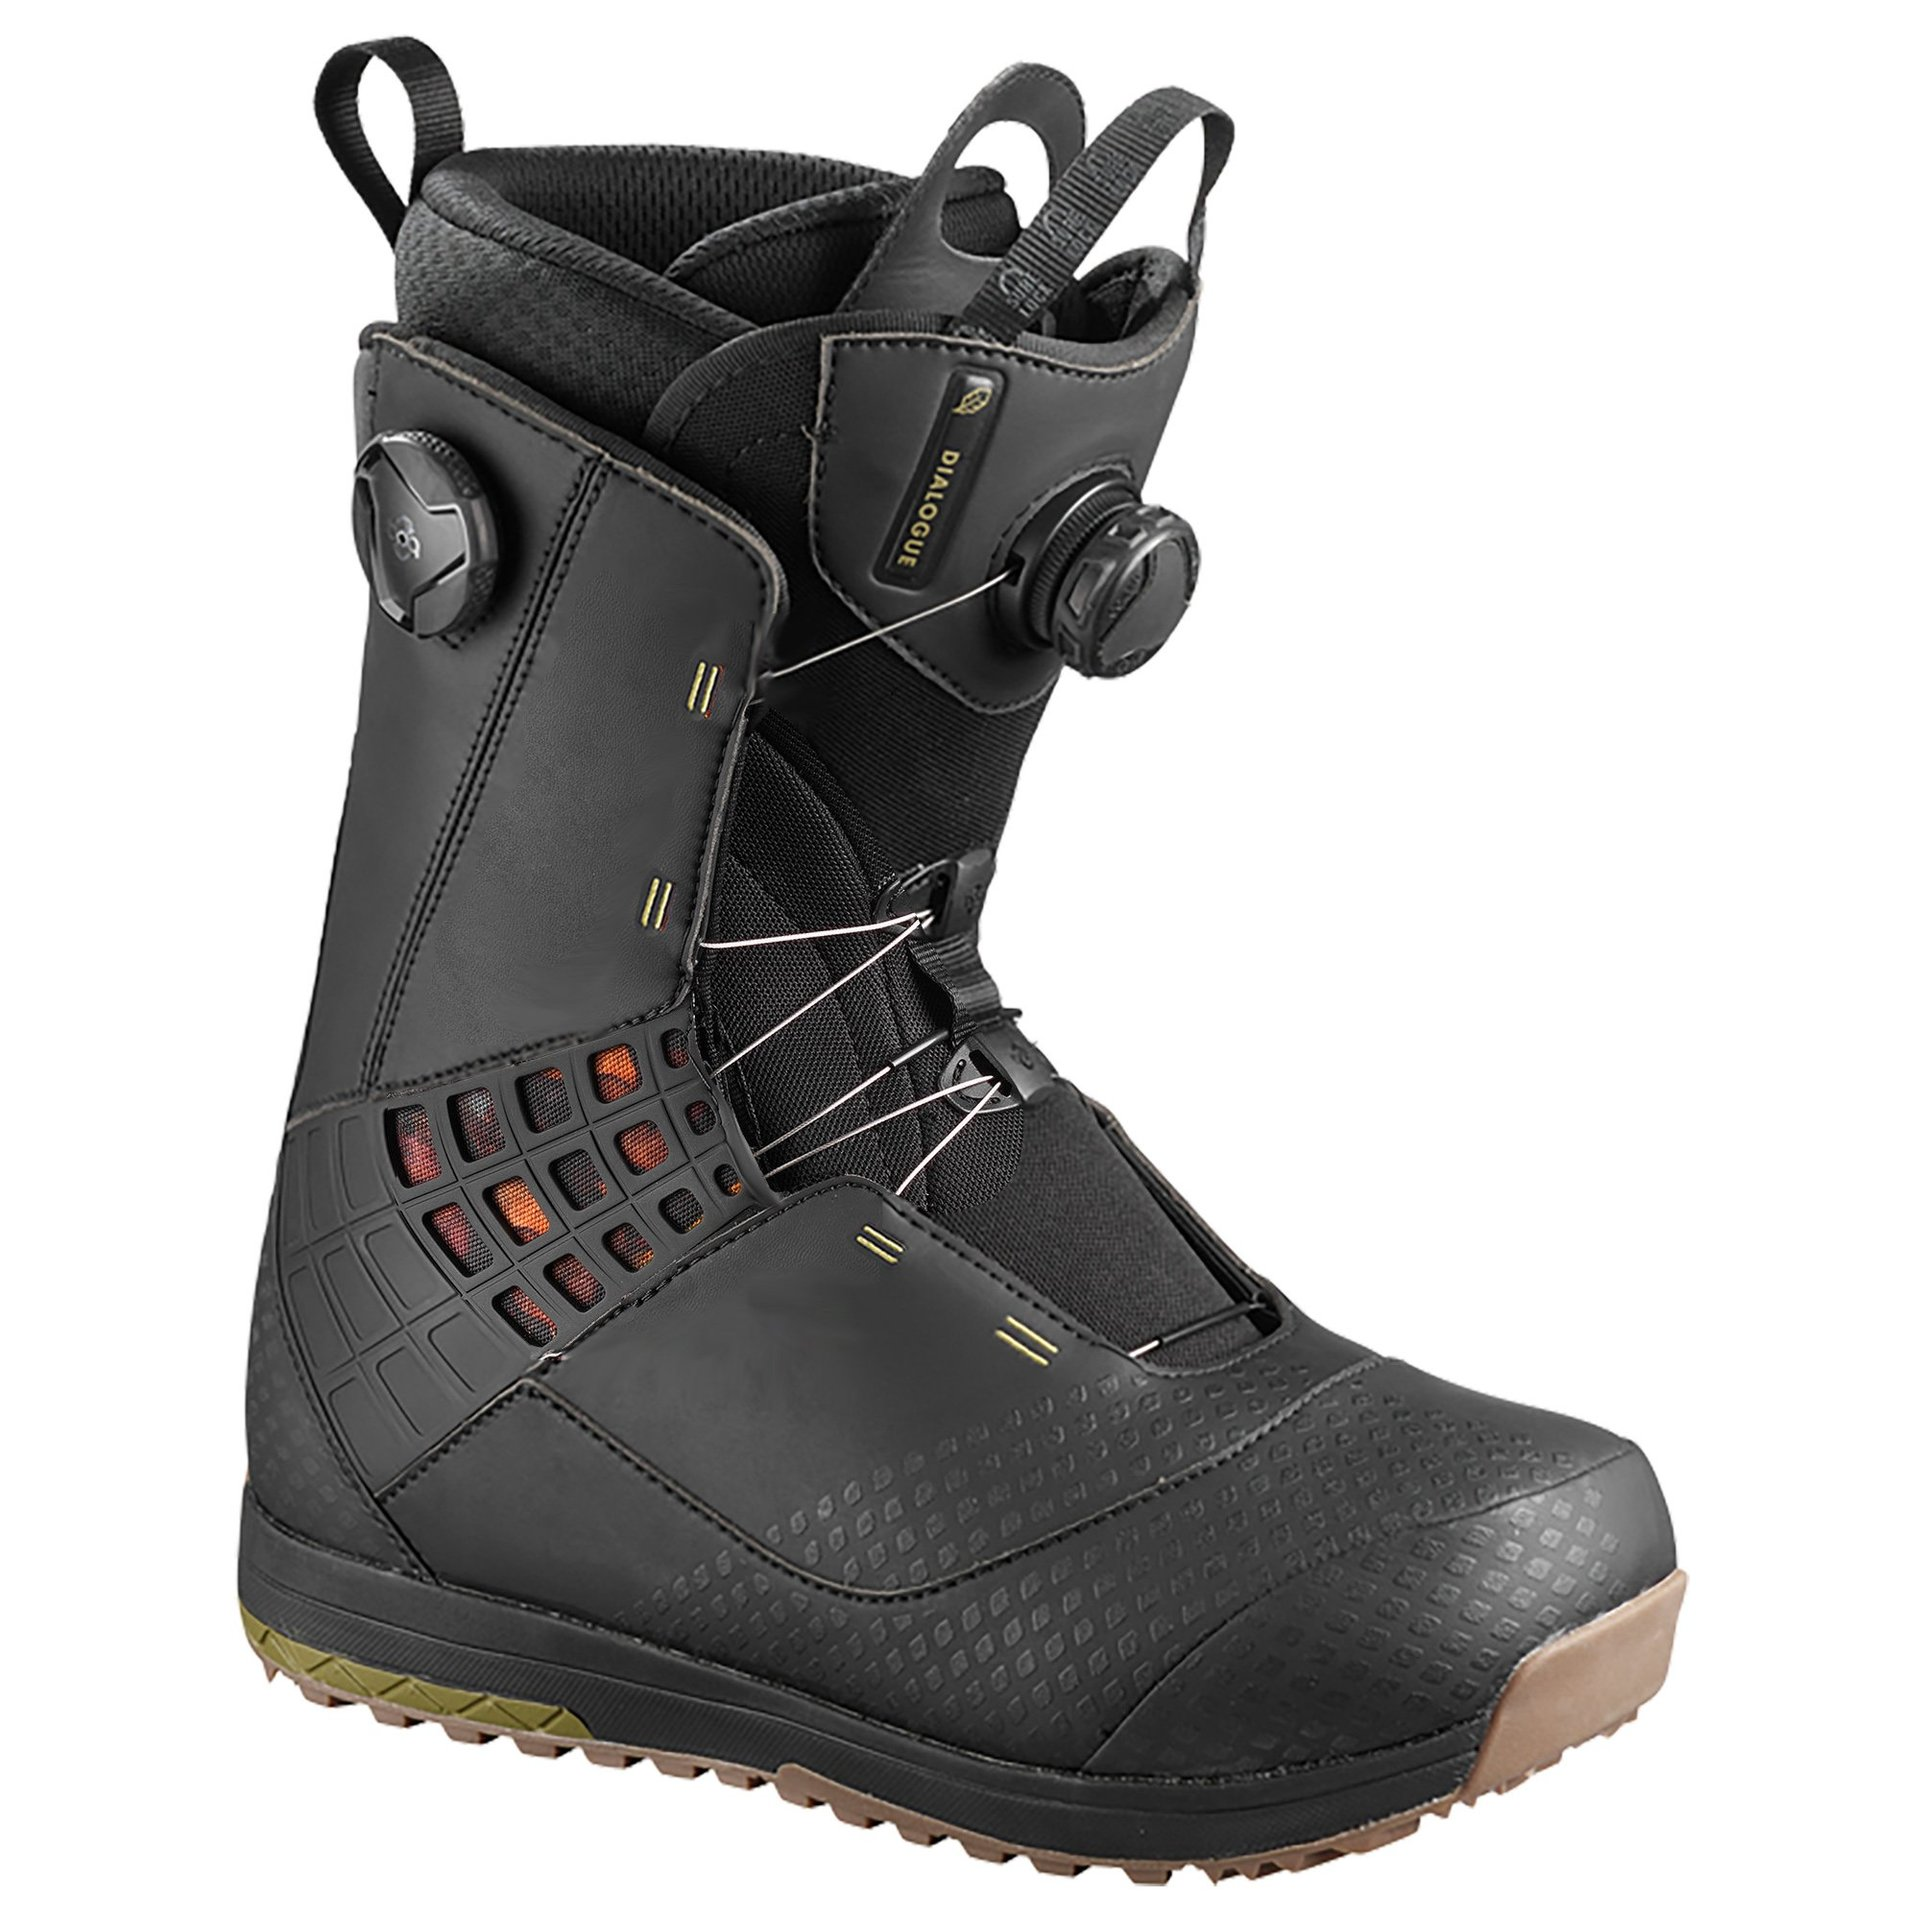 BUTY SNOWBOARDOWE SALOMON DIALOGUE FOCUS BOA 405102 BLACK 1